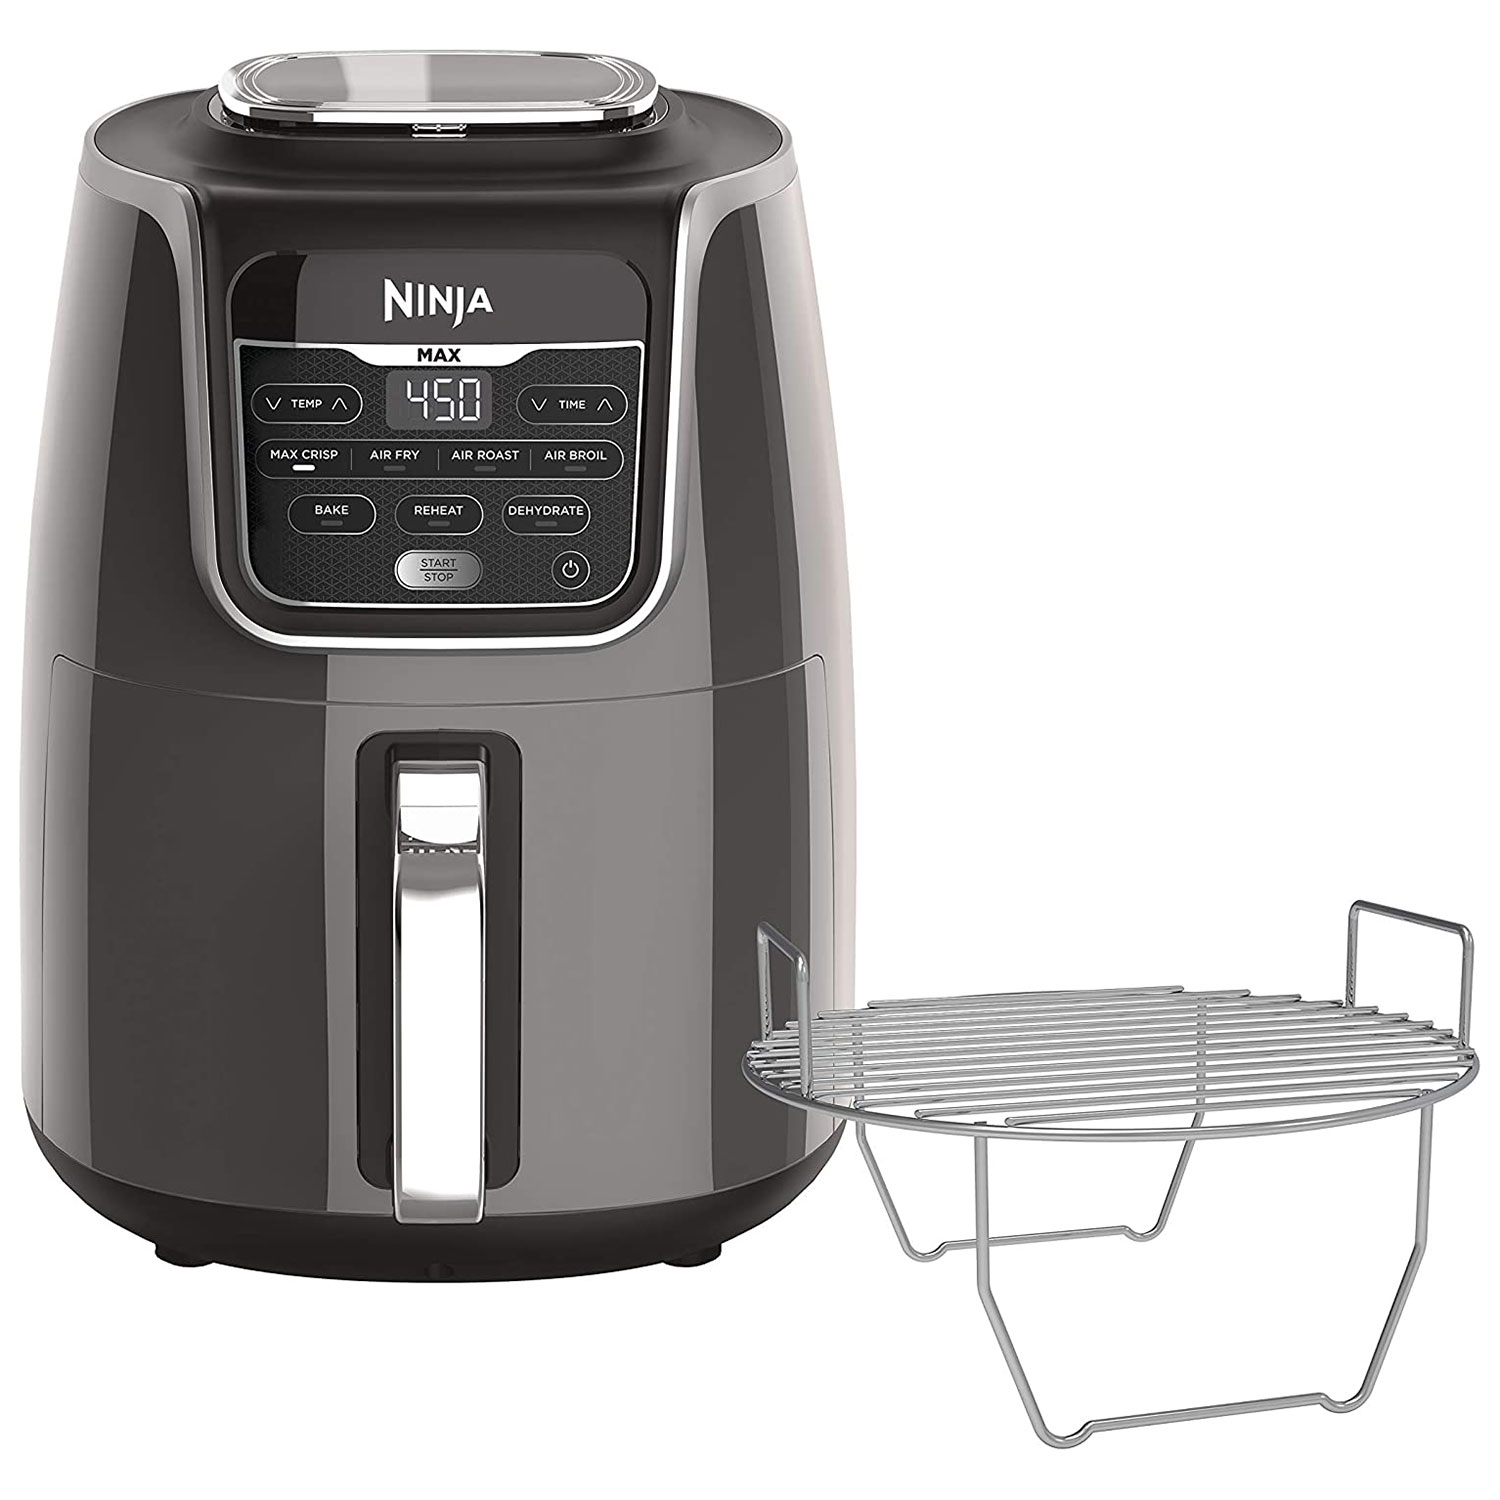 Ninja Max XL Air Fryer that Cooks, Crisps, Roasts, Broils, Bakes, Reheats and Dehydrates